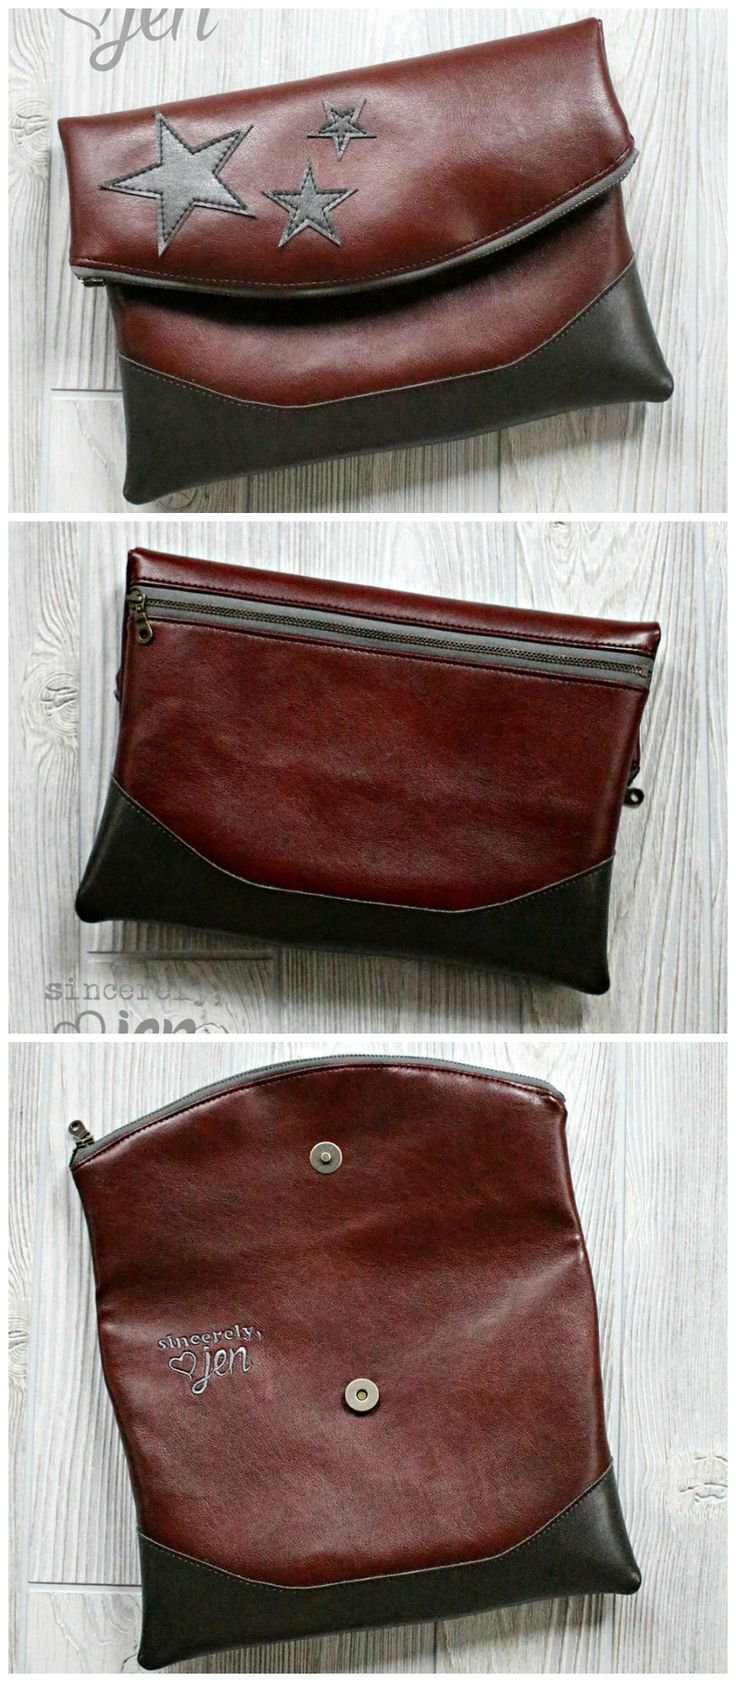 Free fold over clutch bag purse sewing pattern. This one is made in leather, but it looks great in fabric too. Free clutch sewing pattern Heidi from Swoon patterns. Photos by Jenny Greene